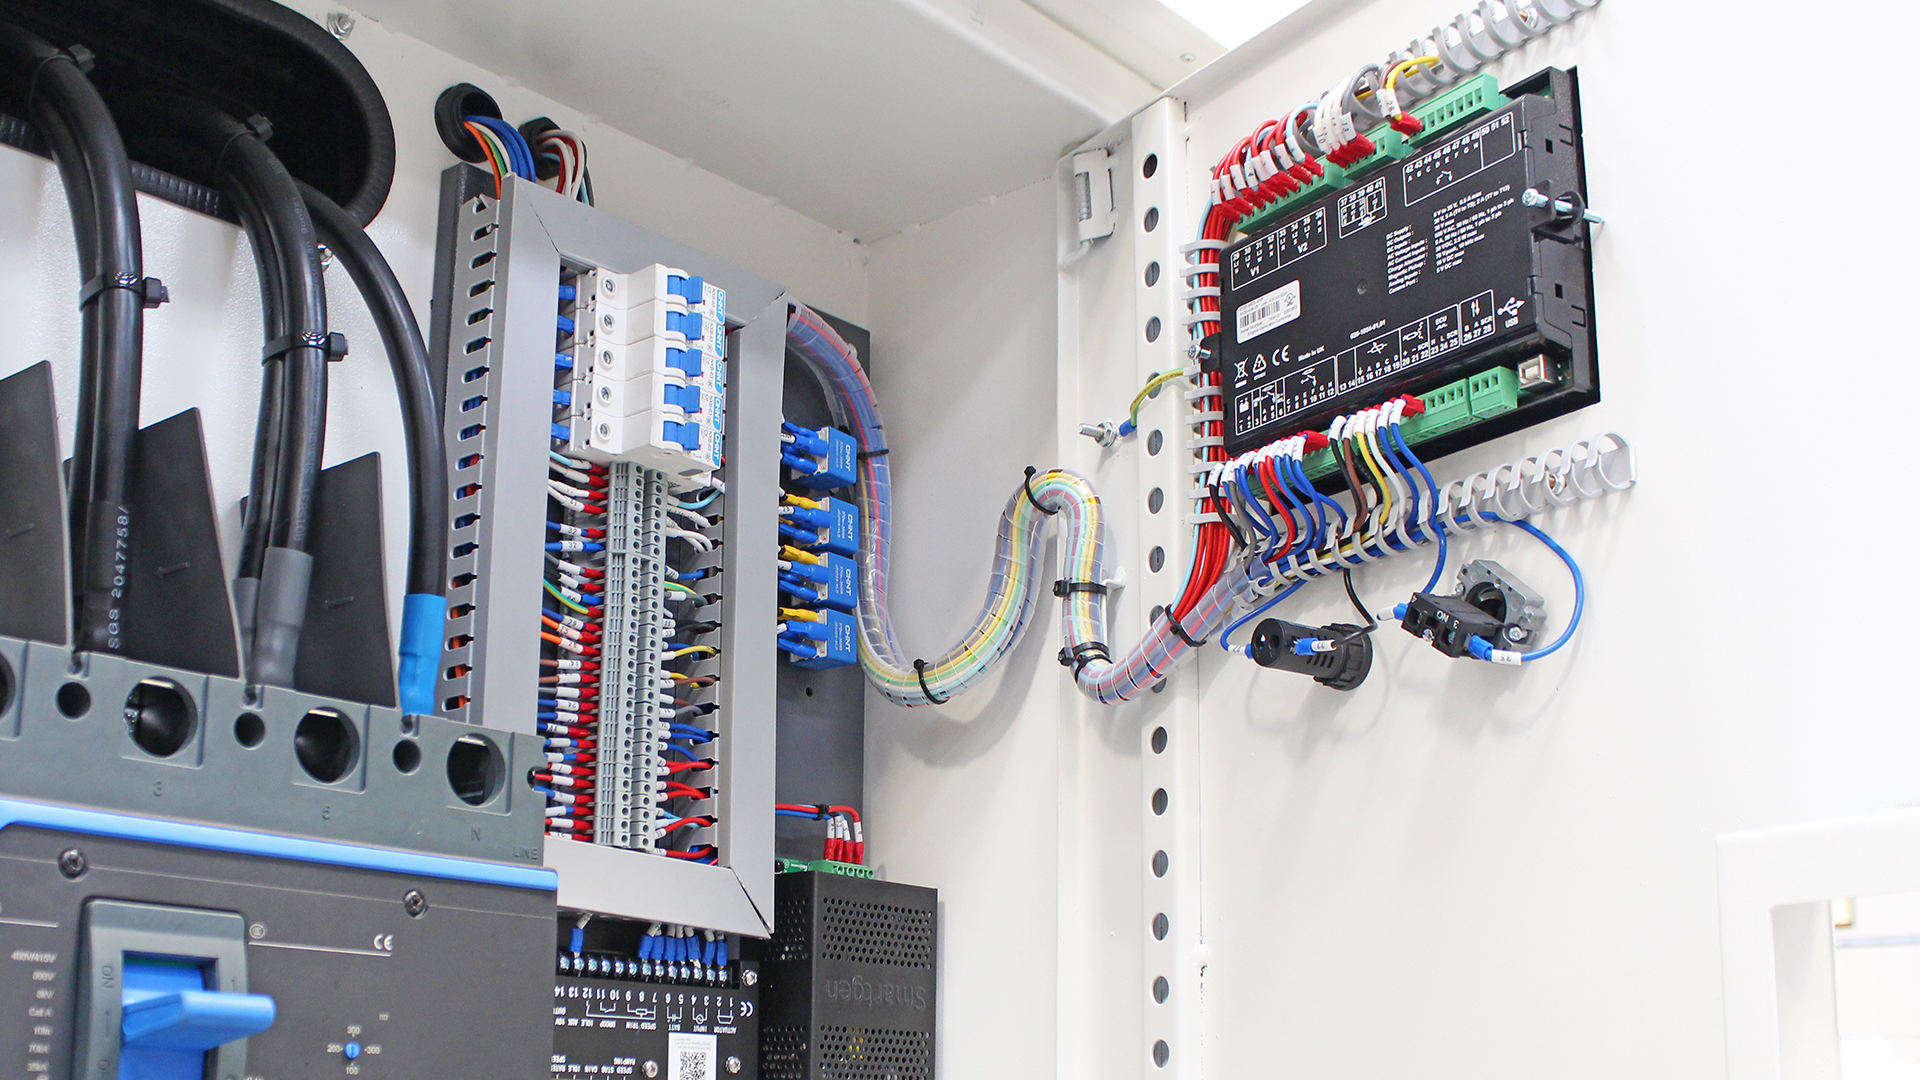 Rear side view of UKC500ECO control panel and terminals